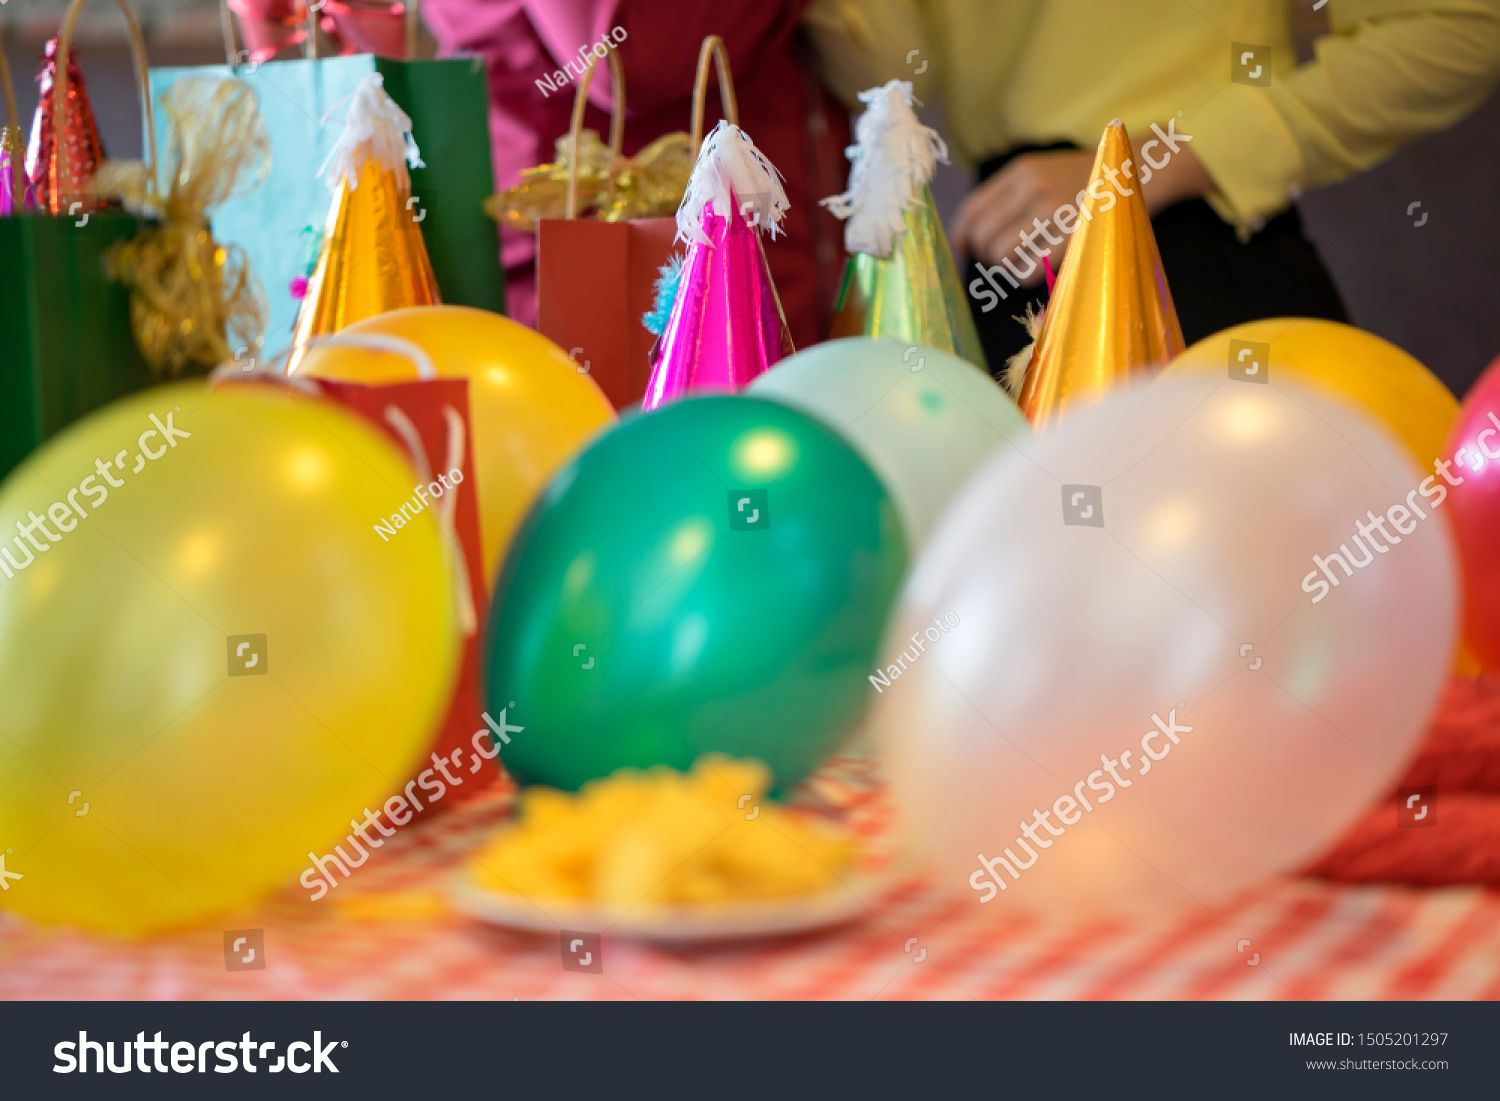 Employer celebrate a Christmas Eve and New Year Party with food, snacks, alcohol. Enjoyable eating, drinking and music entertainment, employee relationship. #Sponsored , #AFF, #Party#Year#snacks#food